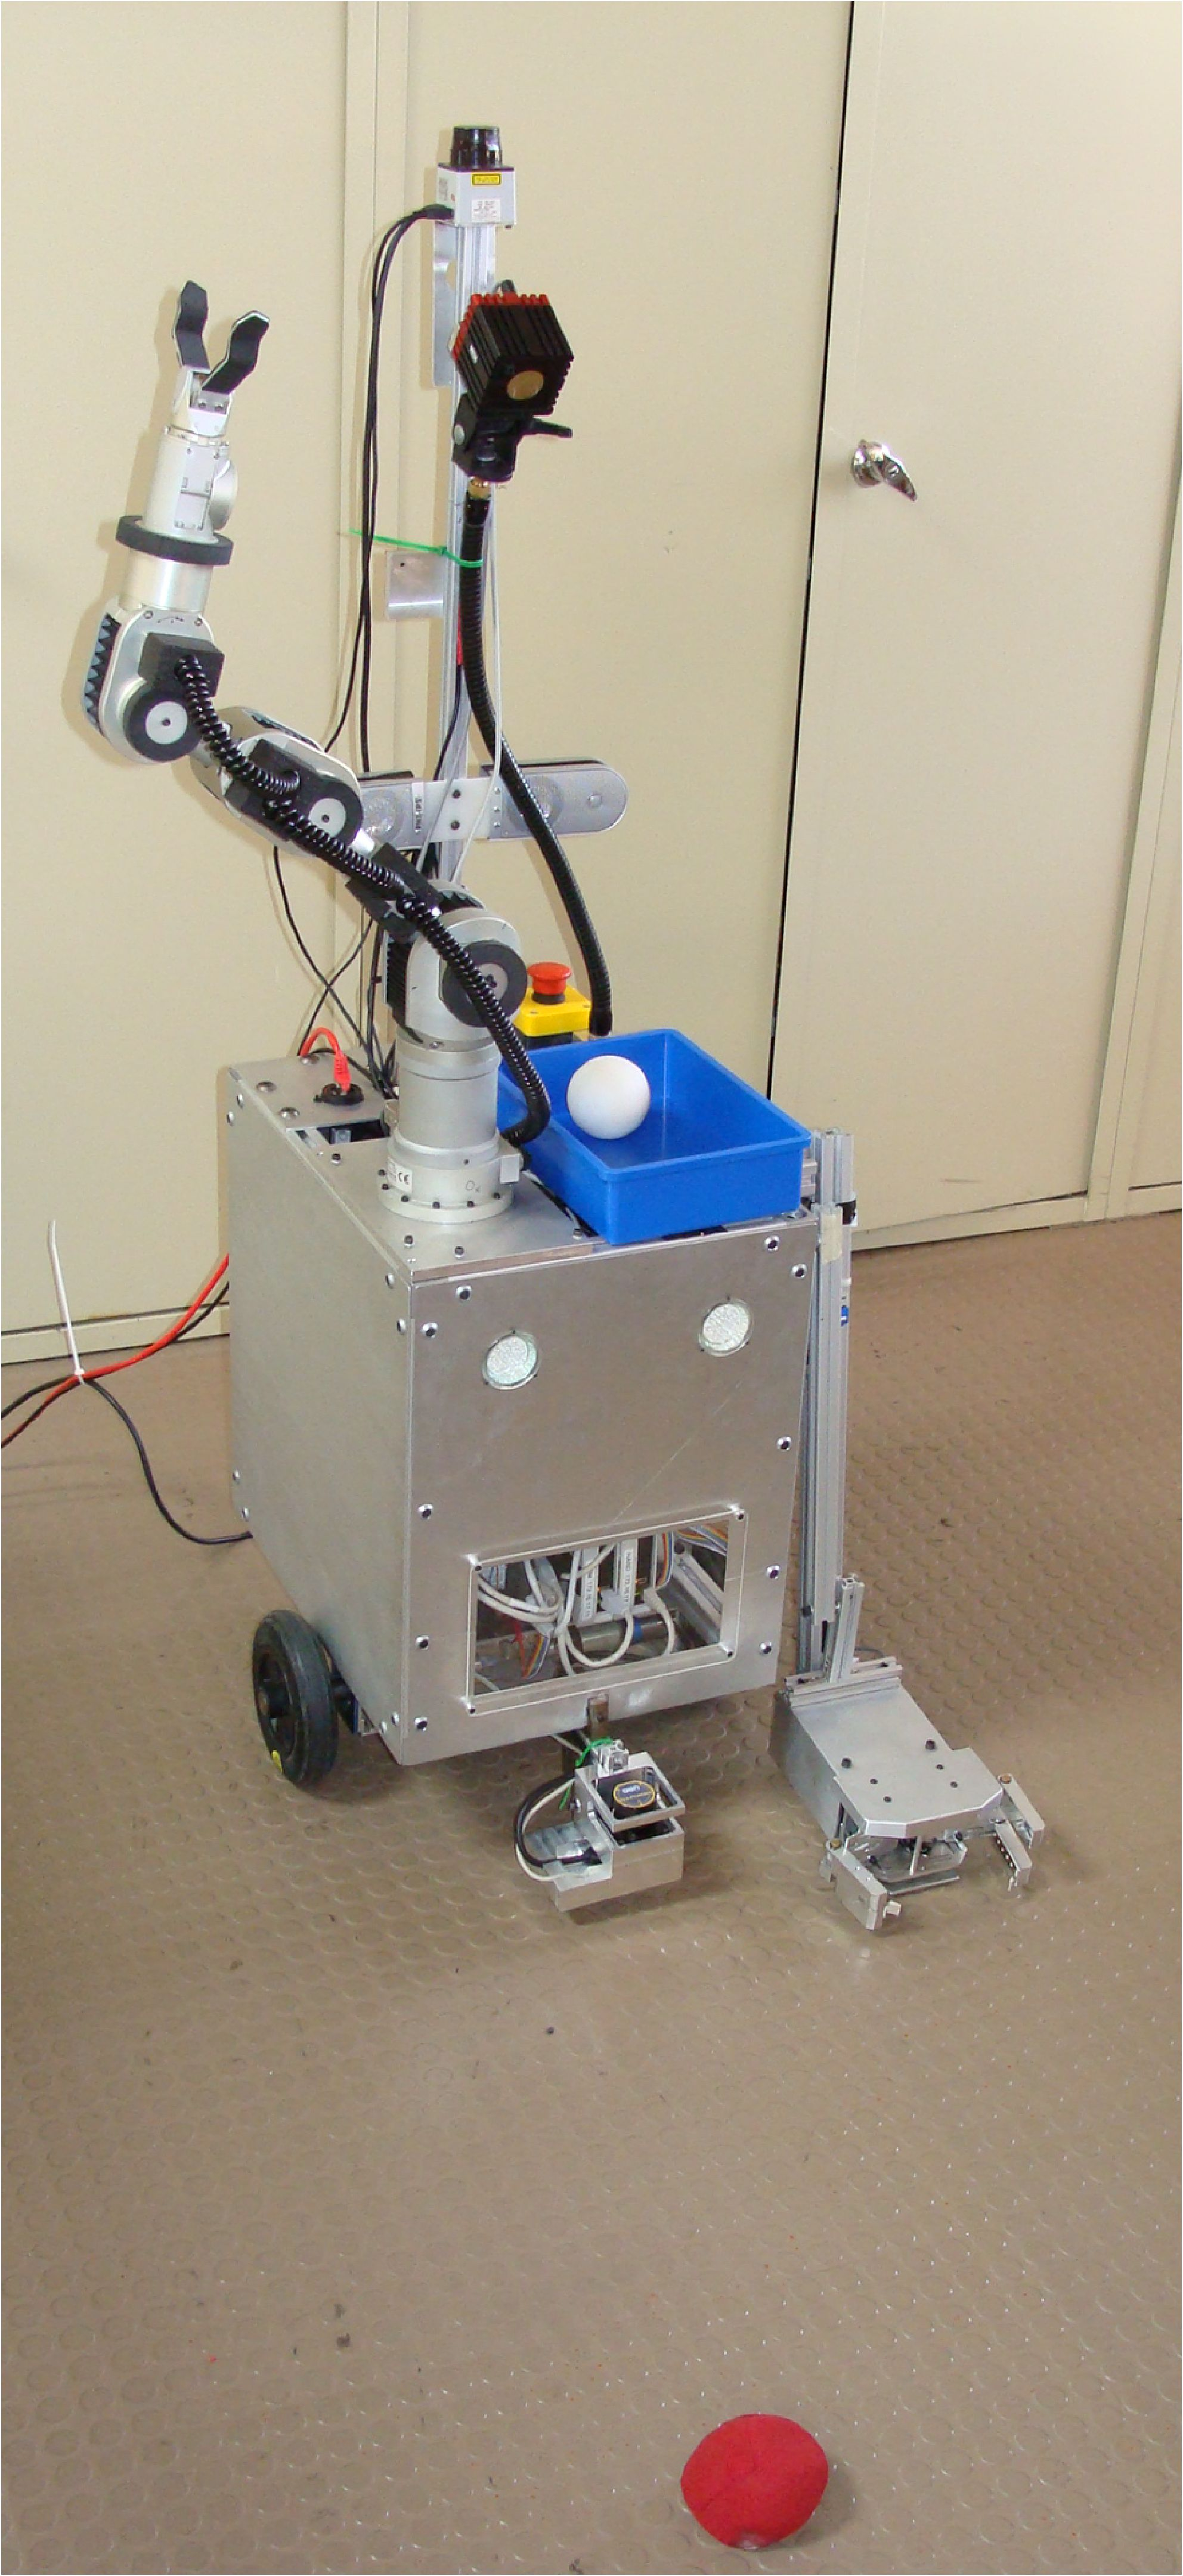 Lara And Robocup At Home Electrical Wiring Joints Pdf Improvements Include Consolidation Of Several Components Shoulder Joint Gripper Control Obstacle Avoidance Mapping Capabilities